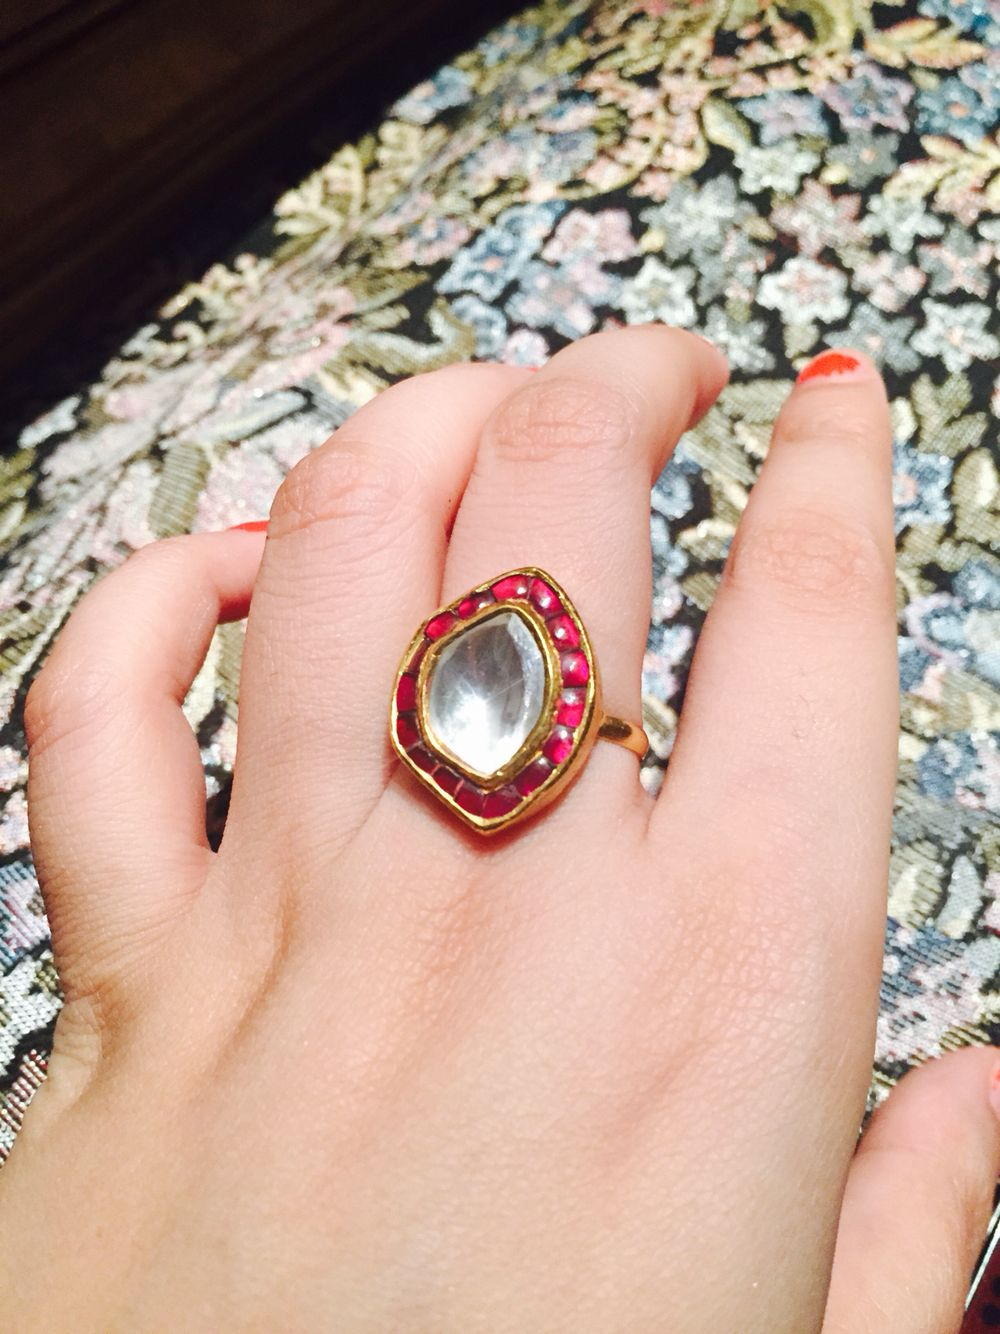 All time fashion | My jwellery passion | Pinterest | Passion and Fashion